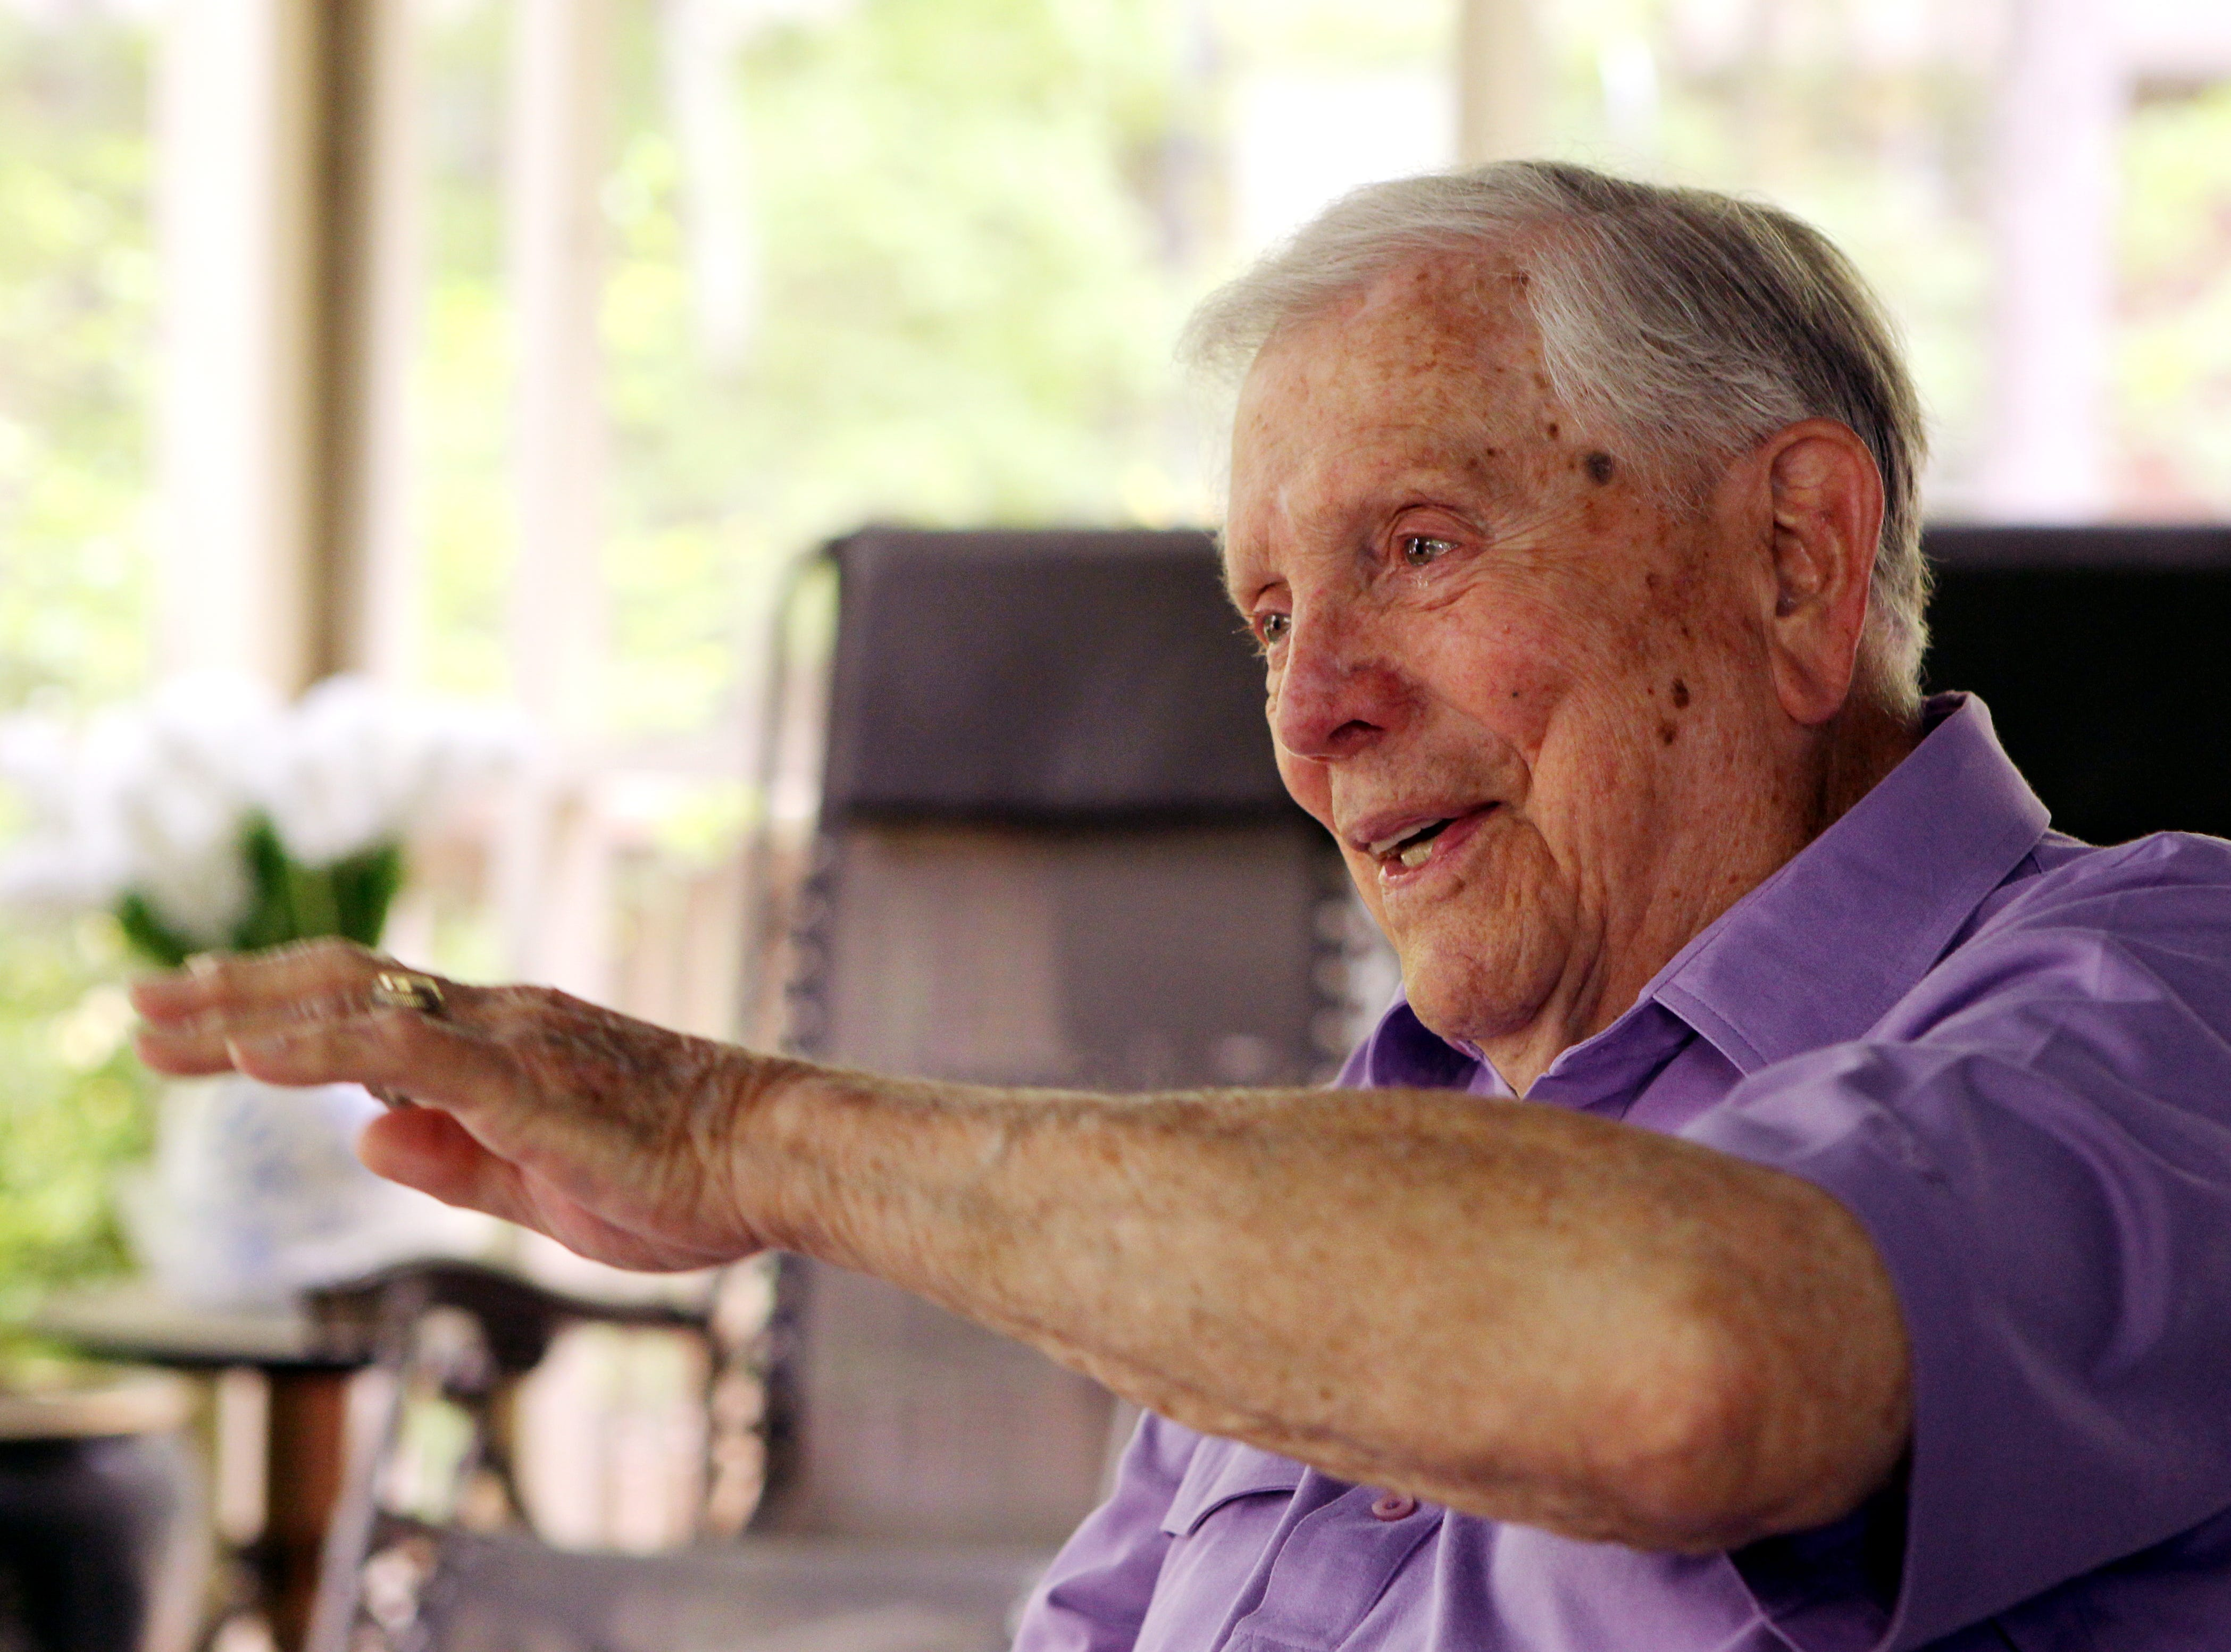 Ben Skardon, 94, talks about his experience of surviving the Bataan Death March in the Phillipines during World War II. Skardon is a 1938 graduate of Clemson University and still lives there.